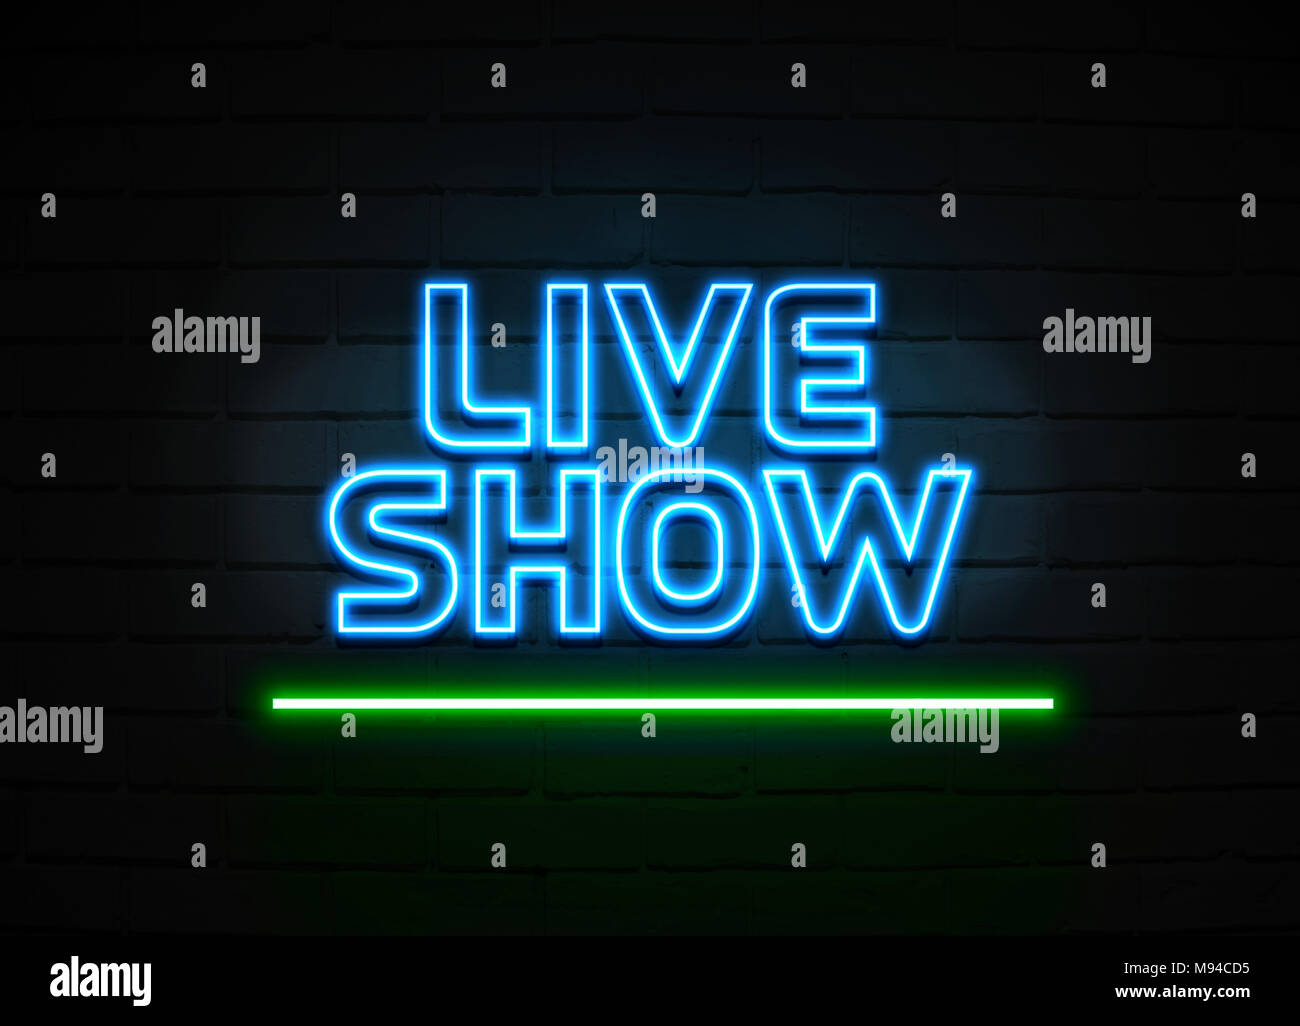 live show neon sign glowing neon sign on brickwall wall 3d